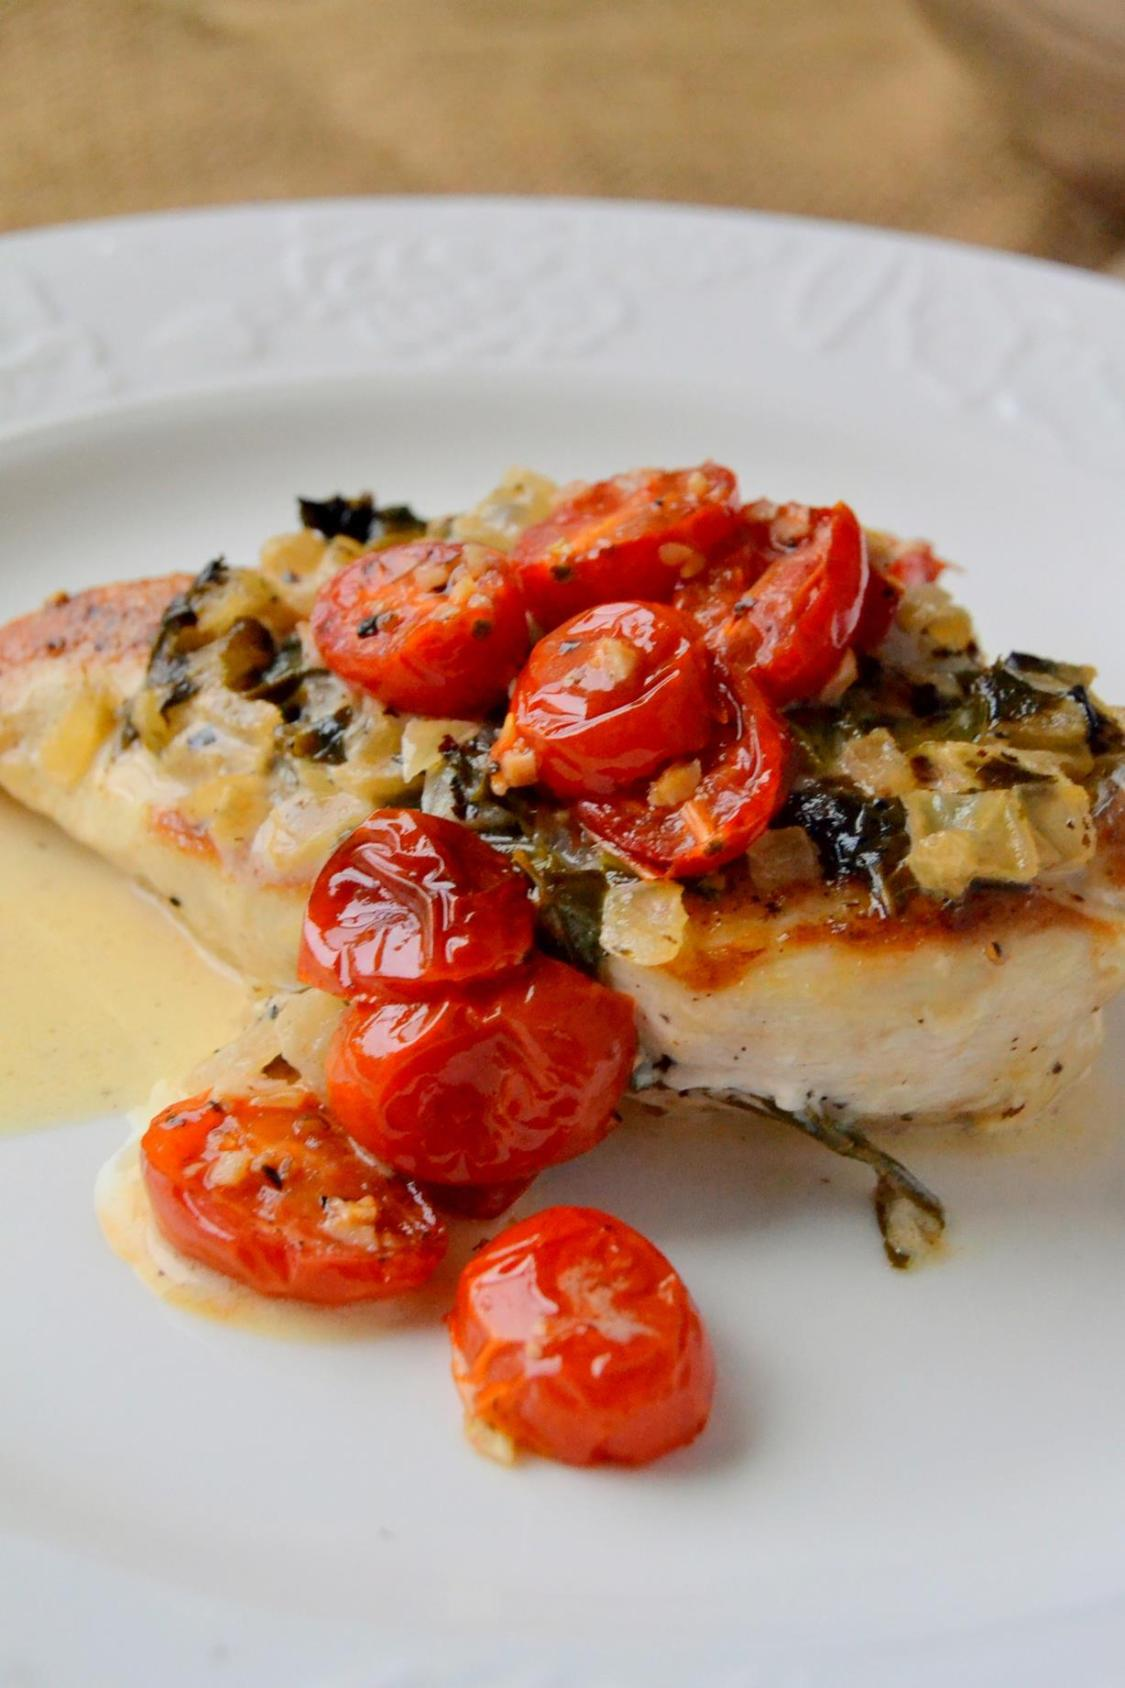 Tattooed Martha - Chicken in Basil Cream Sauce with Roasted Tomatoes (7)